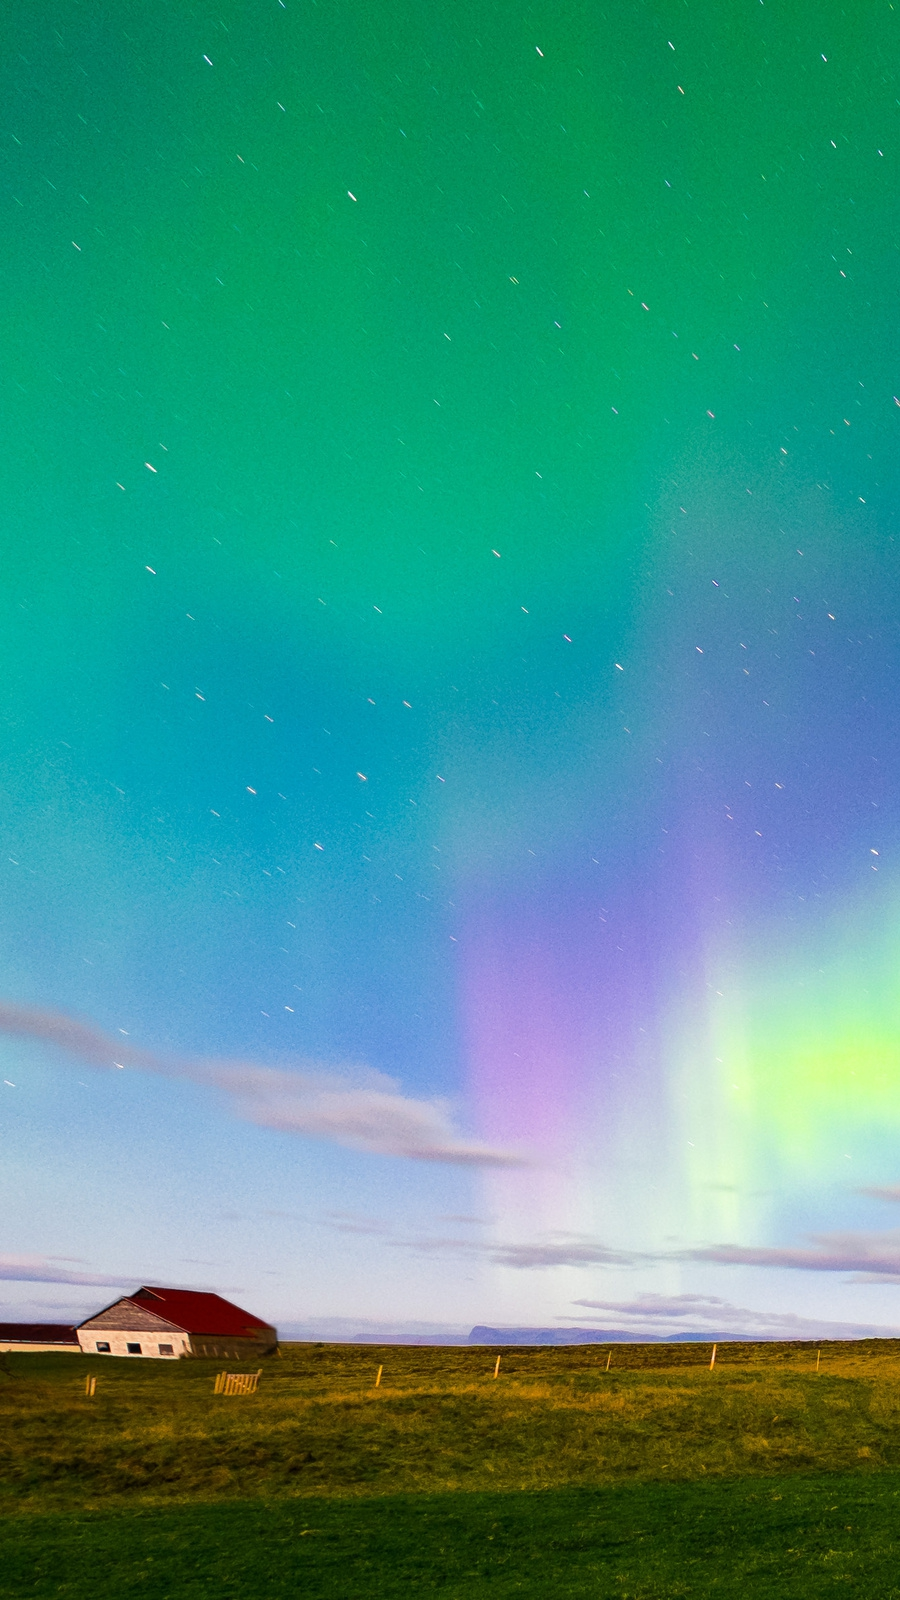 Cute Autumn Wallpaper Iceland Aurora Borealis Northern Lights Iphone Wallpaper